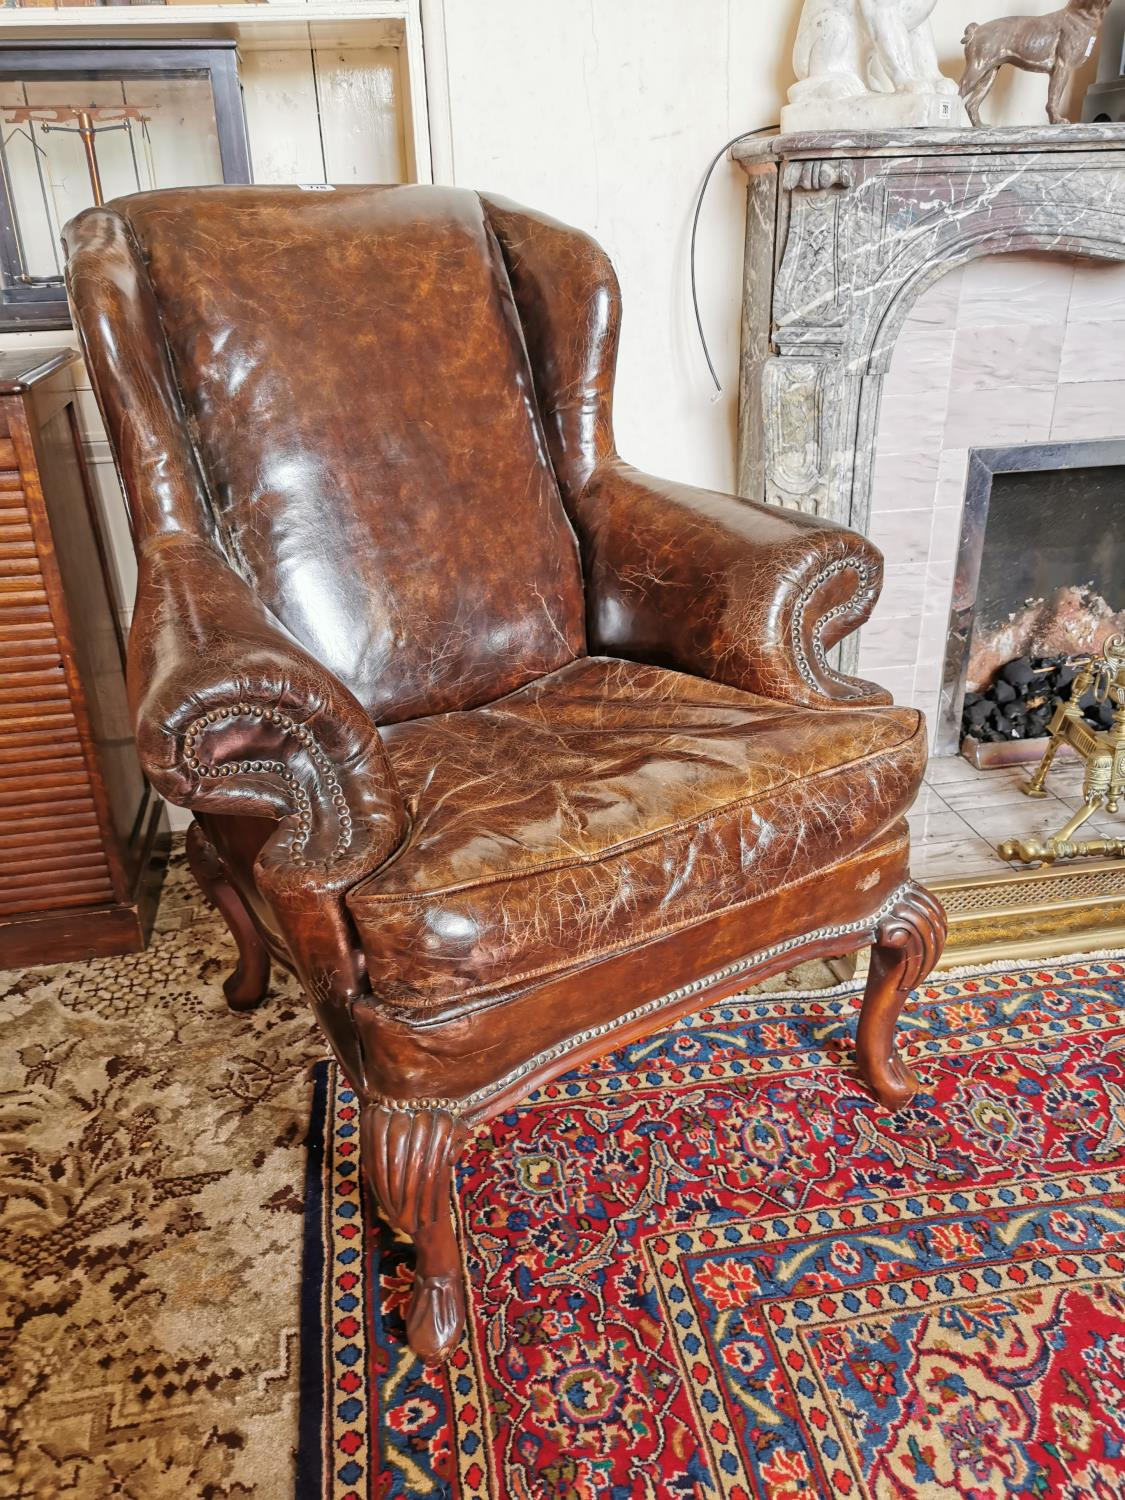 Superior quality pair of leather upholstered wing backed armchairs - Image 2 of 3